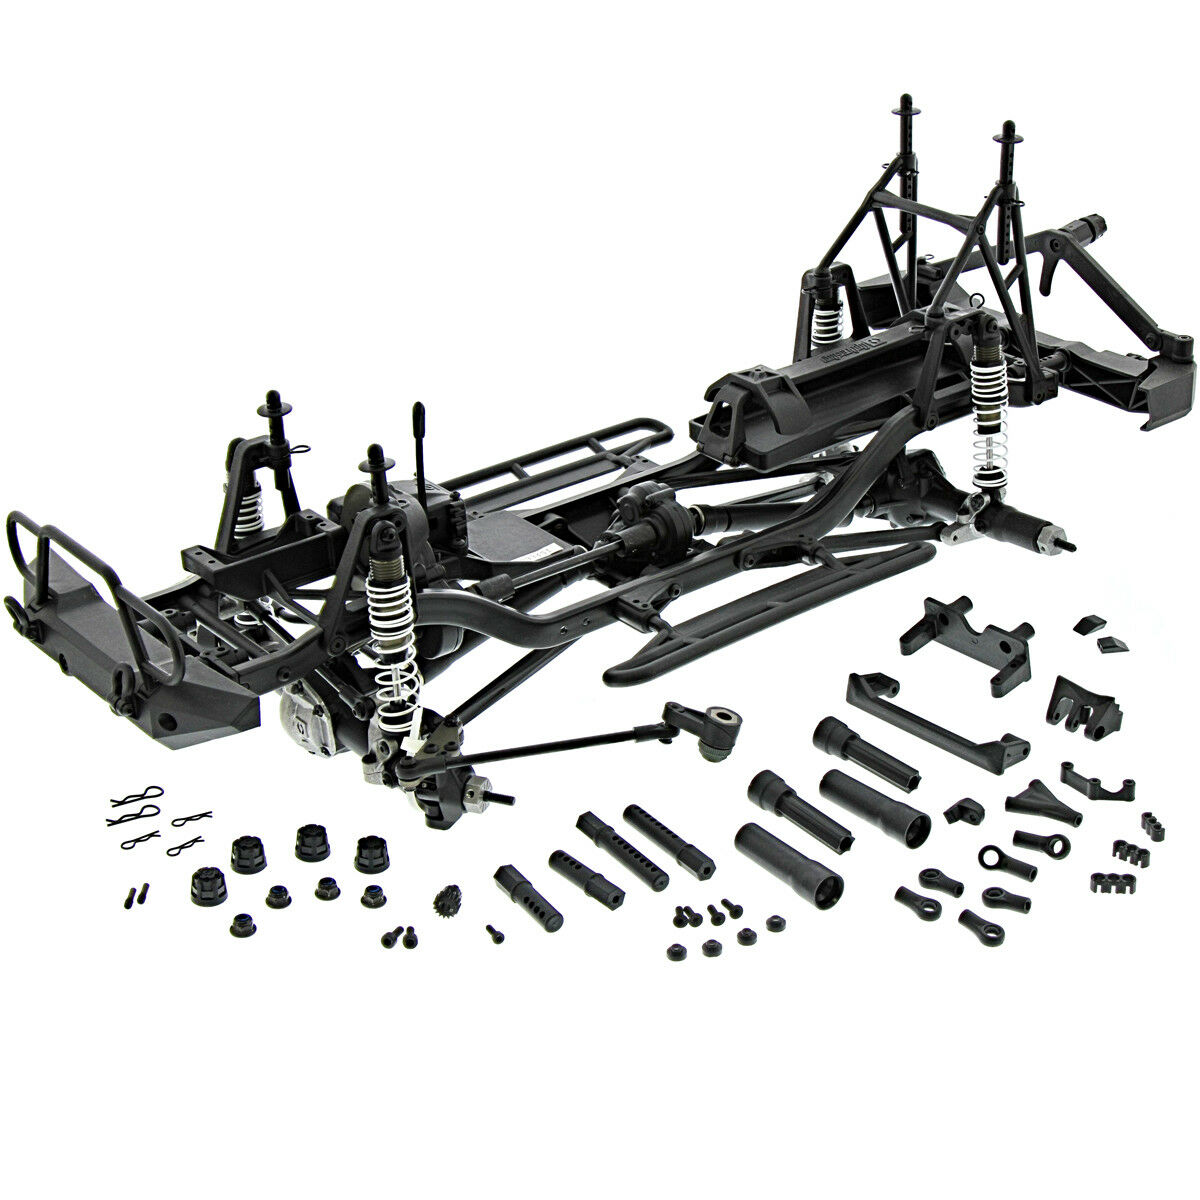 HPI 1 10 Venture   ROLLER ROLLING CHASSIS with Transfer Case & Differential  punto vendita